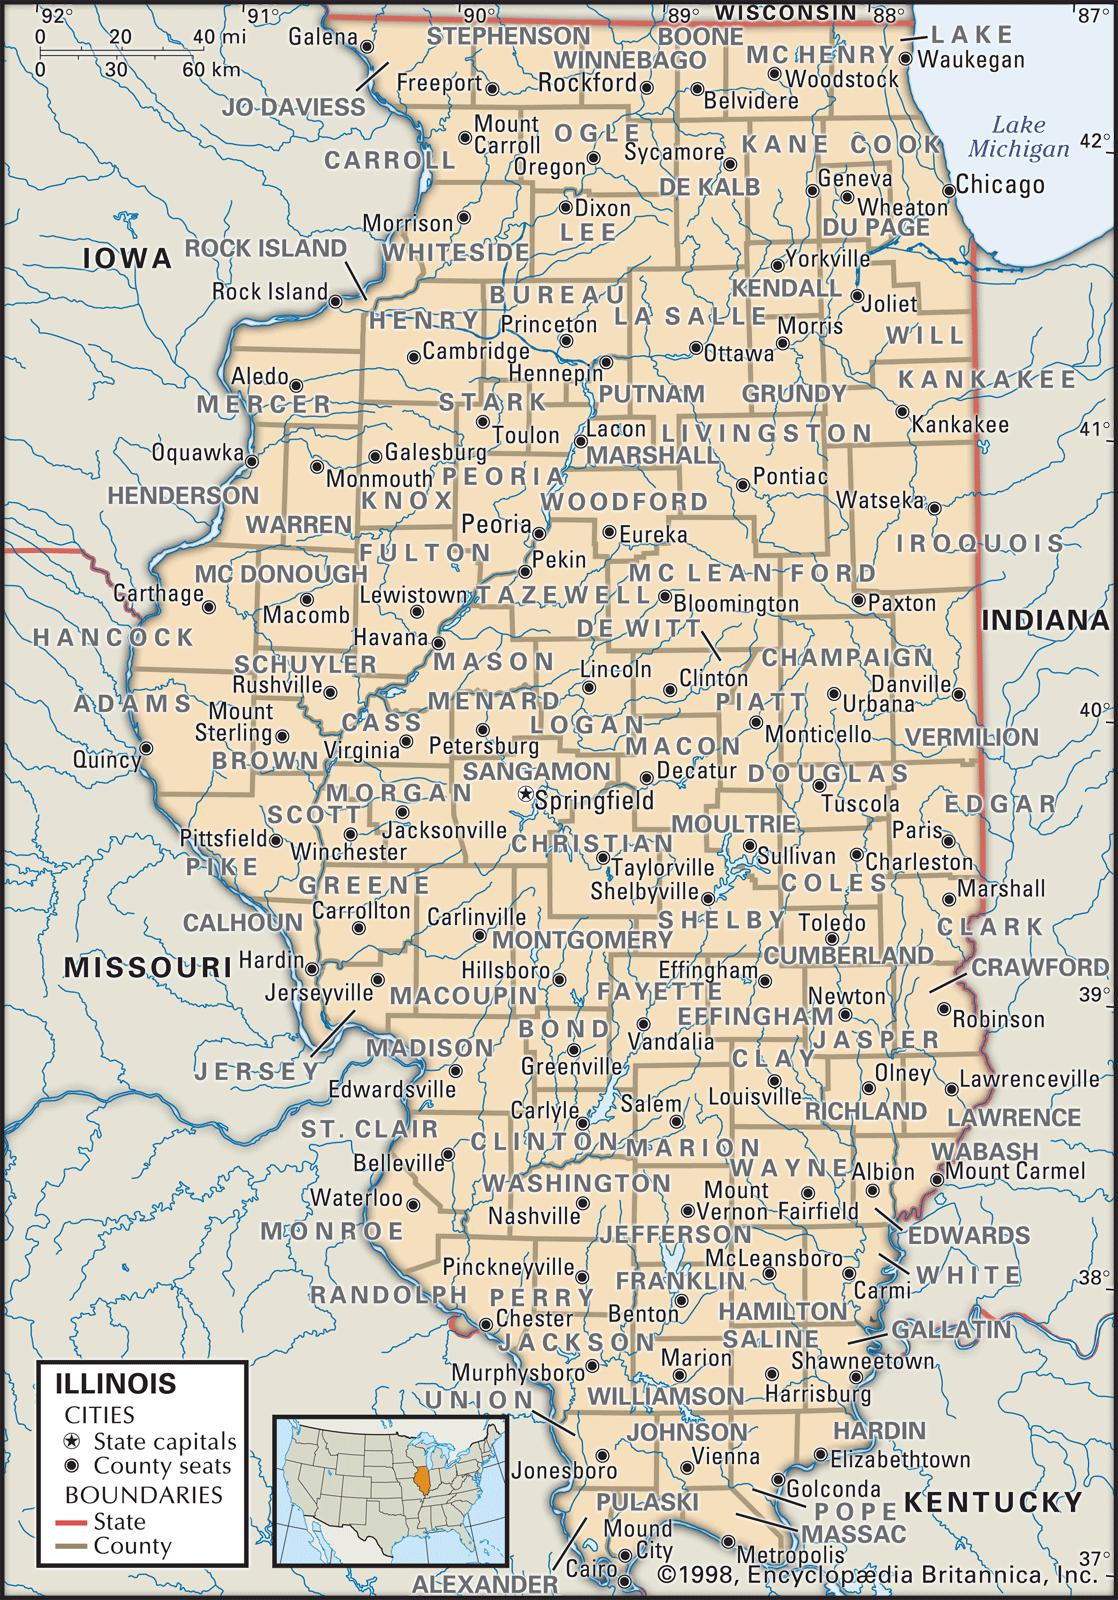 Palatine Illinois Map.State And County Maps Of Illinois